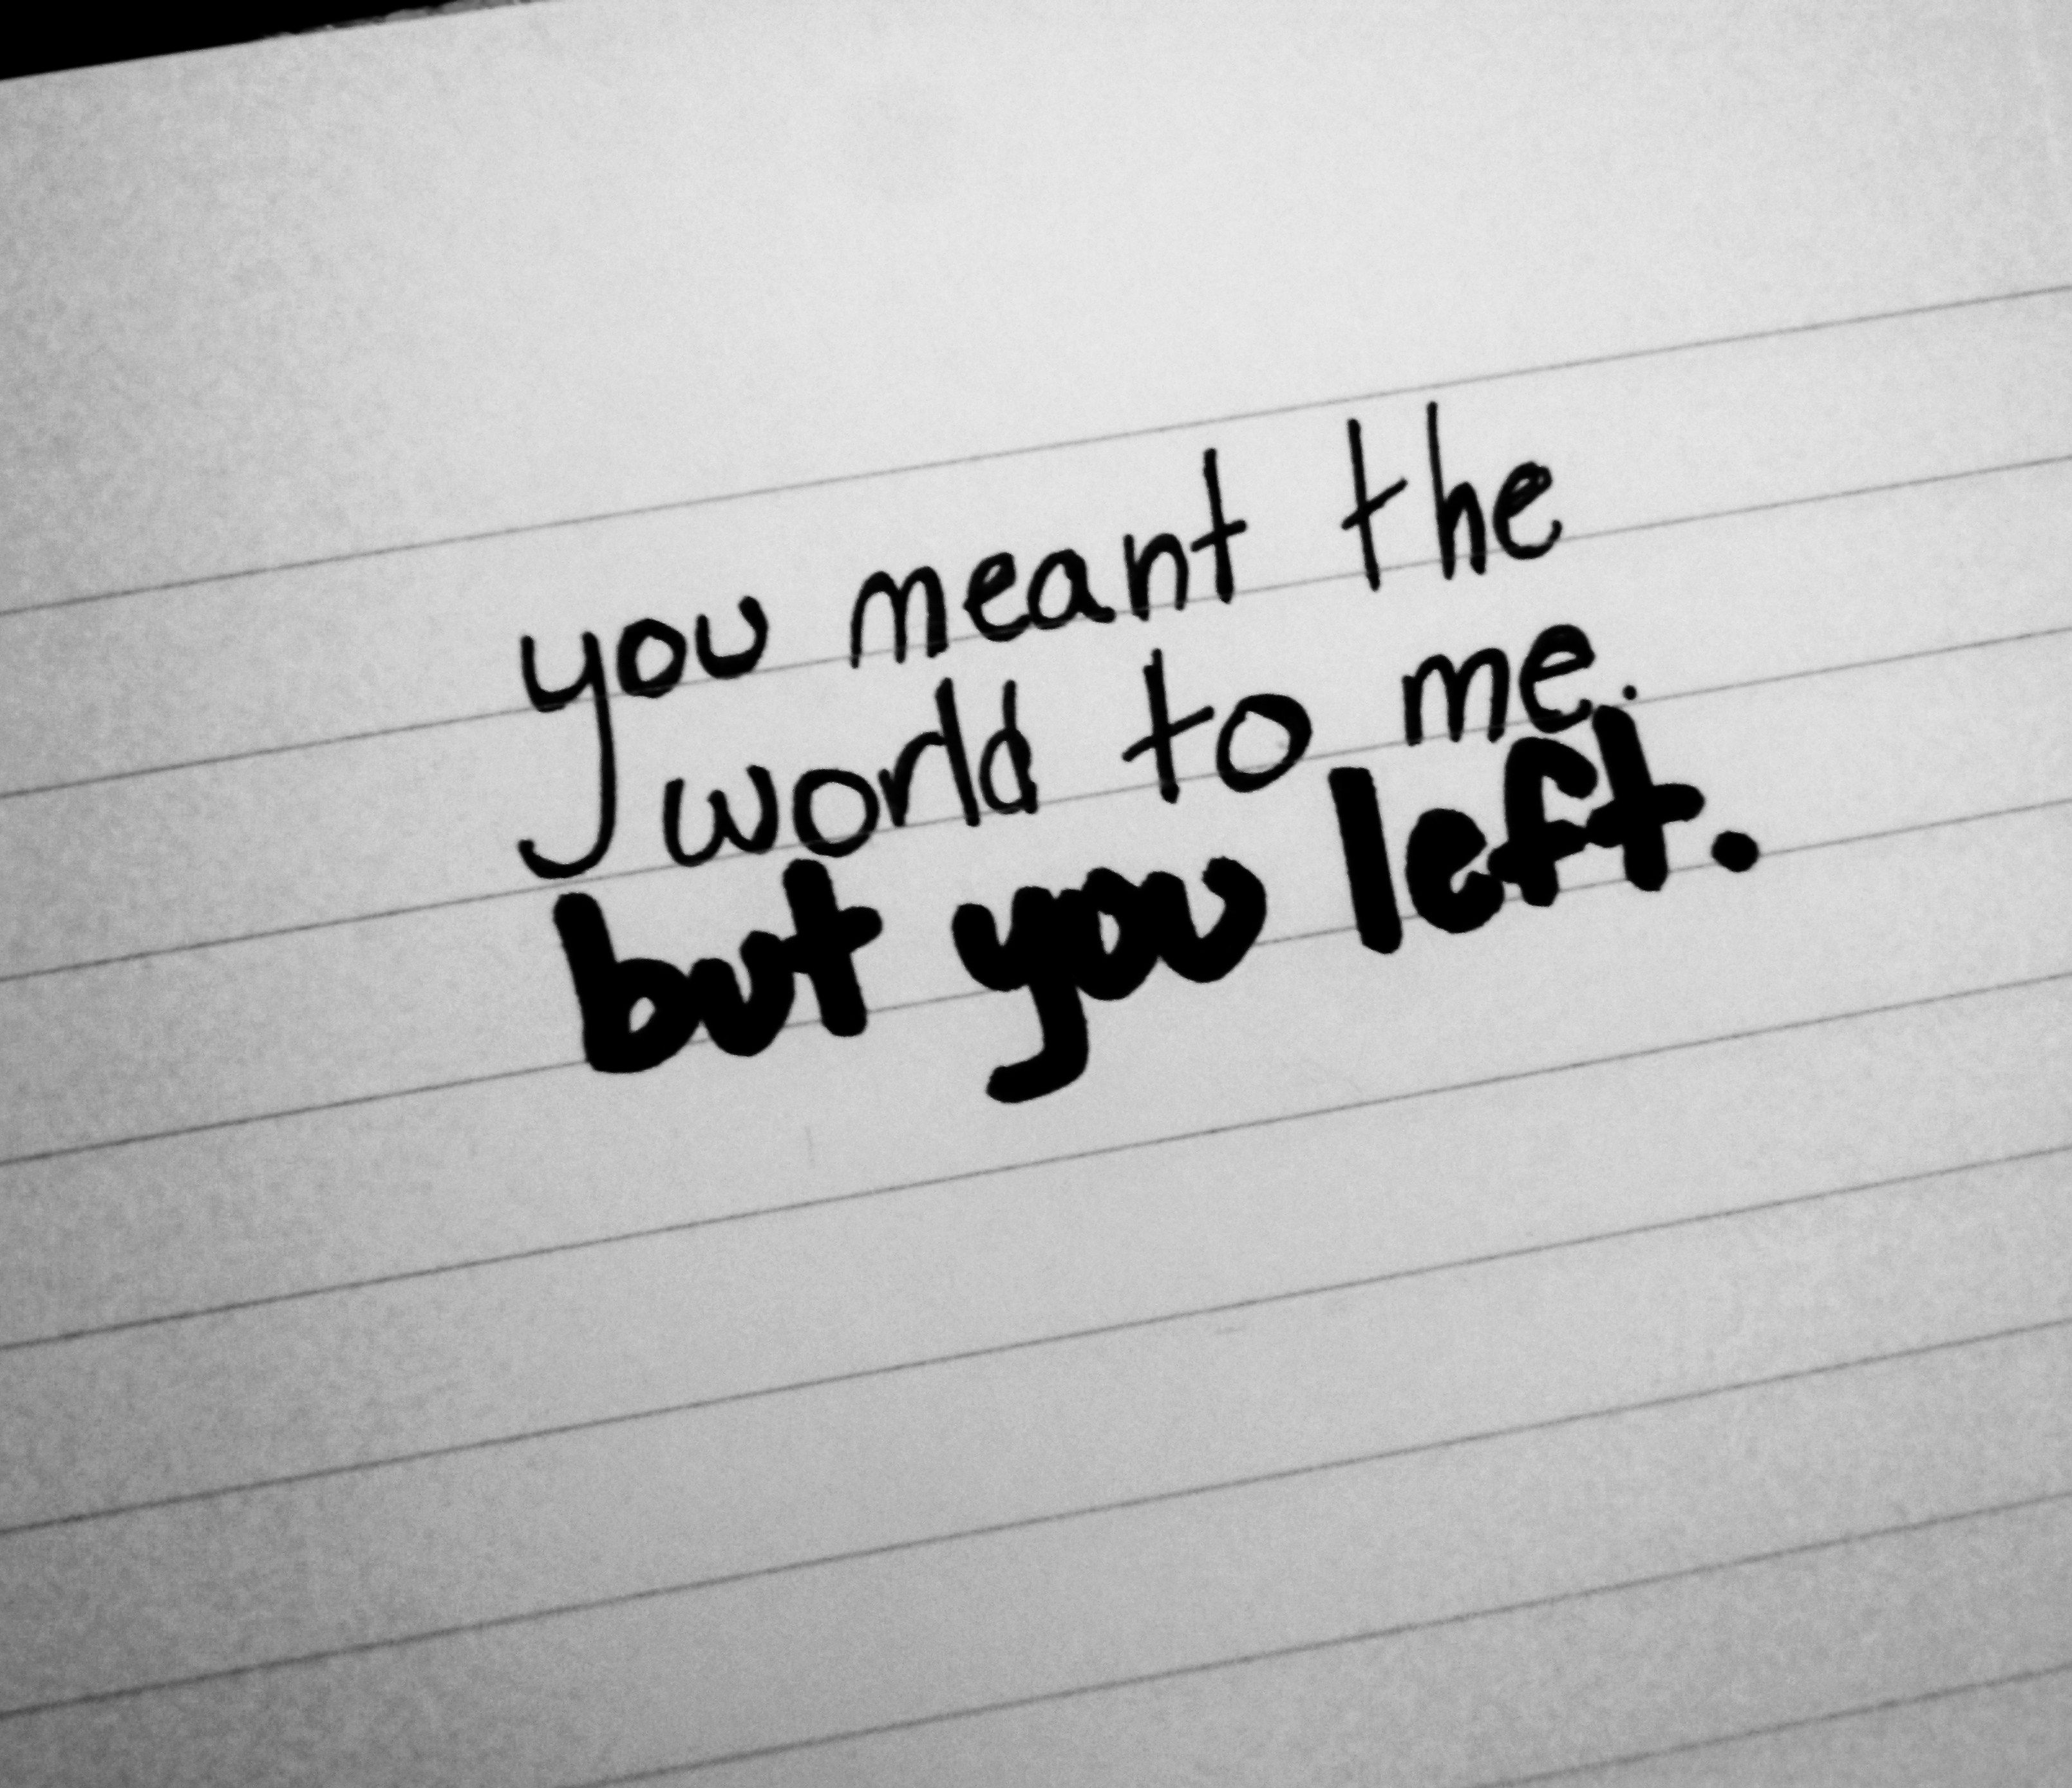 you meant the world to me. but you left.